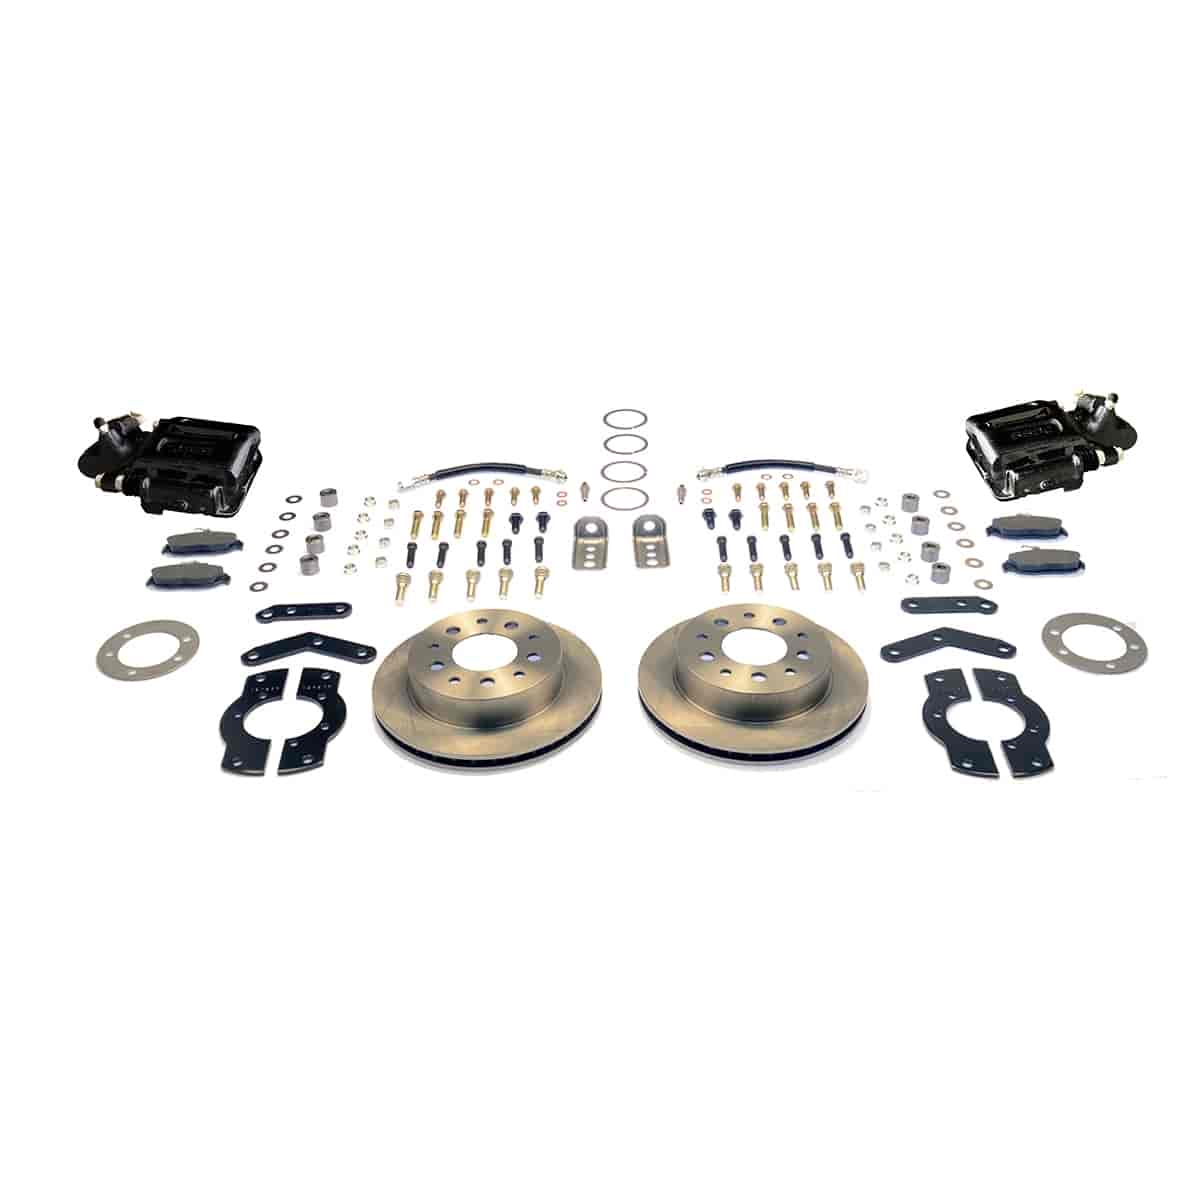 SSBC A125-4BK - Stainless Steel Brakes Single Piston Rear Drum to Disc Brake Conversion Kits